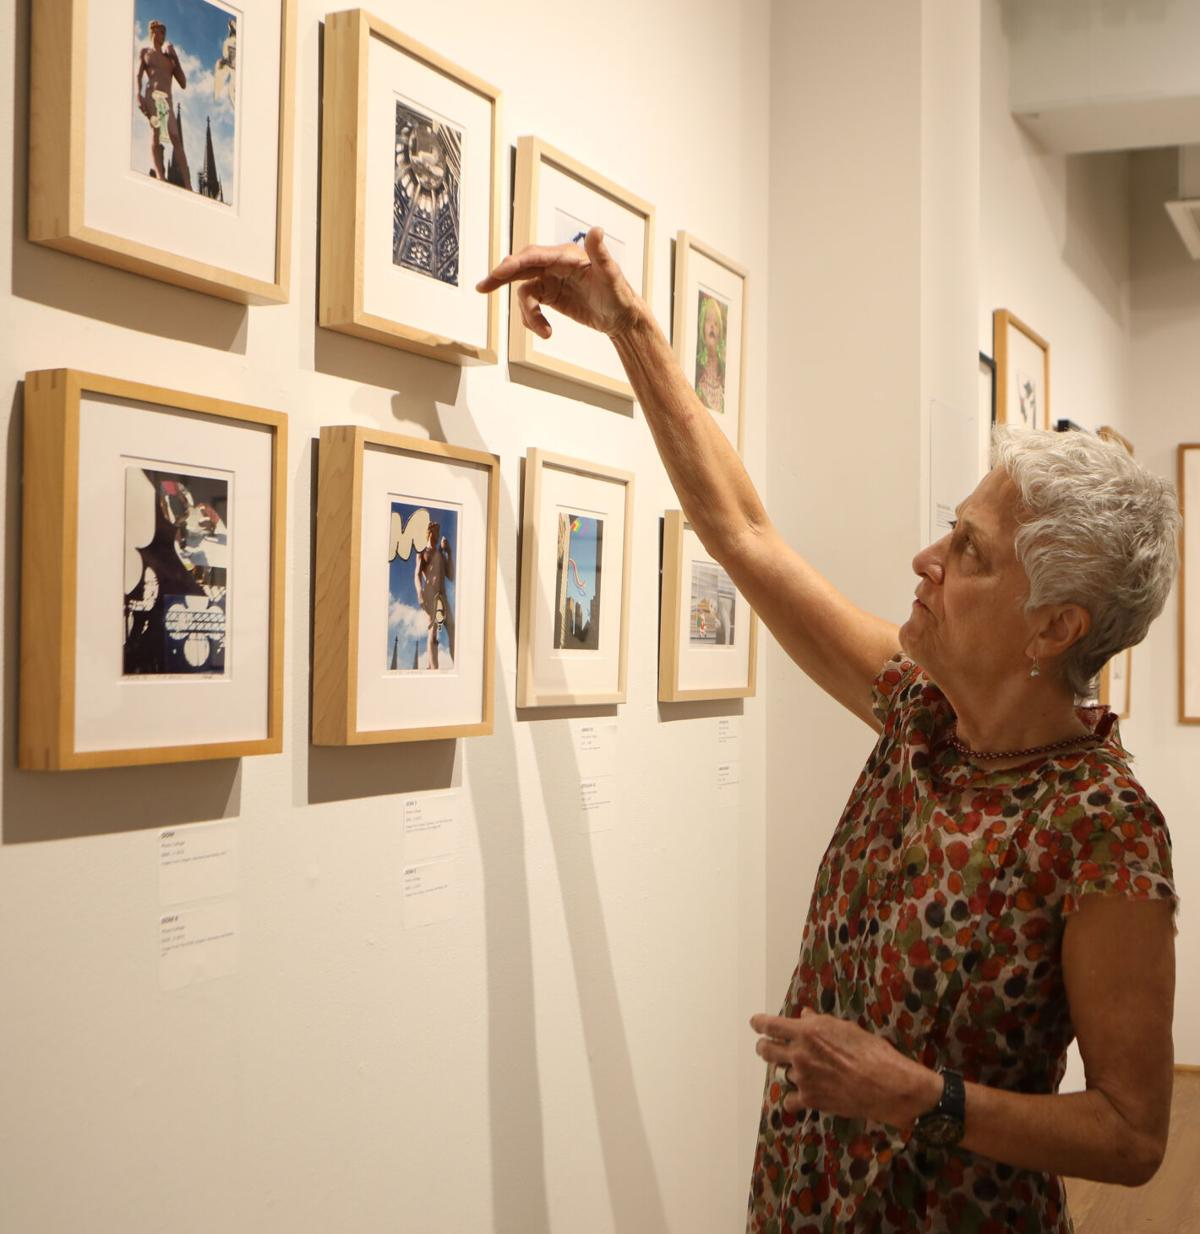 Sally Dill points to her artwork